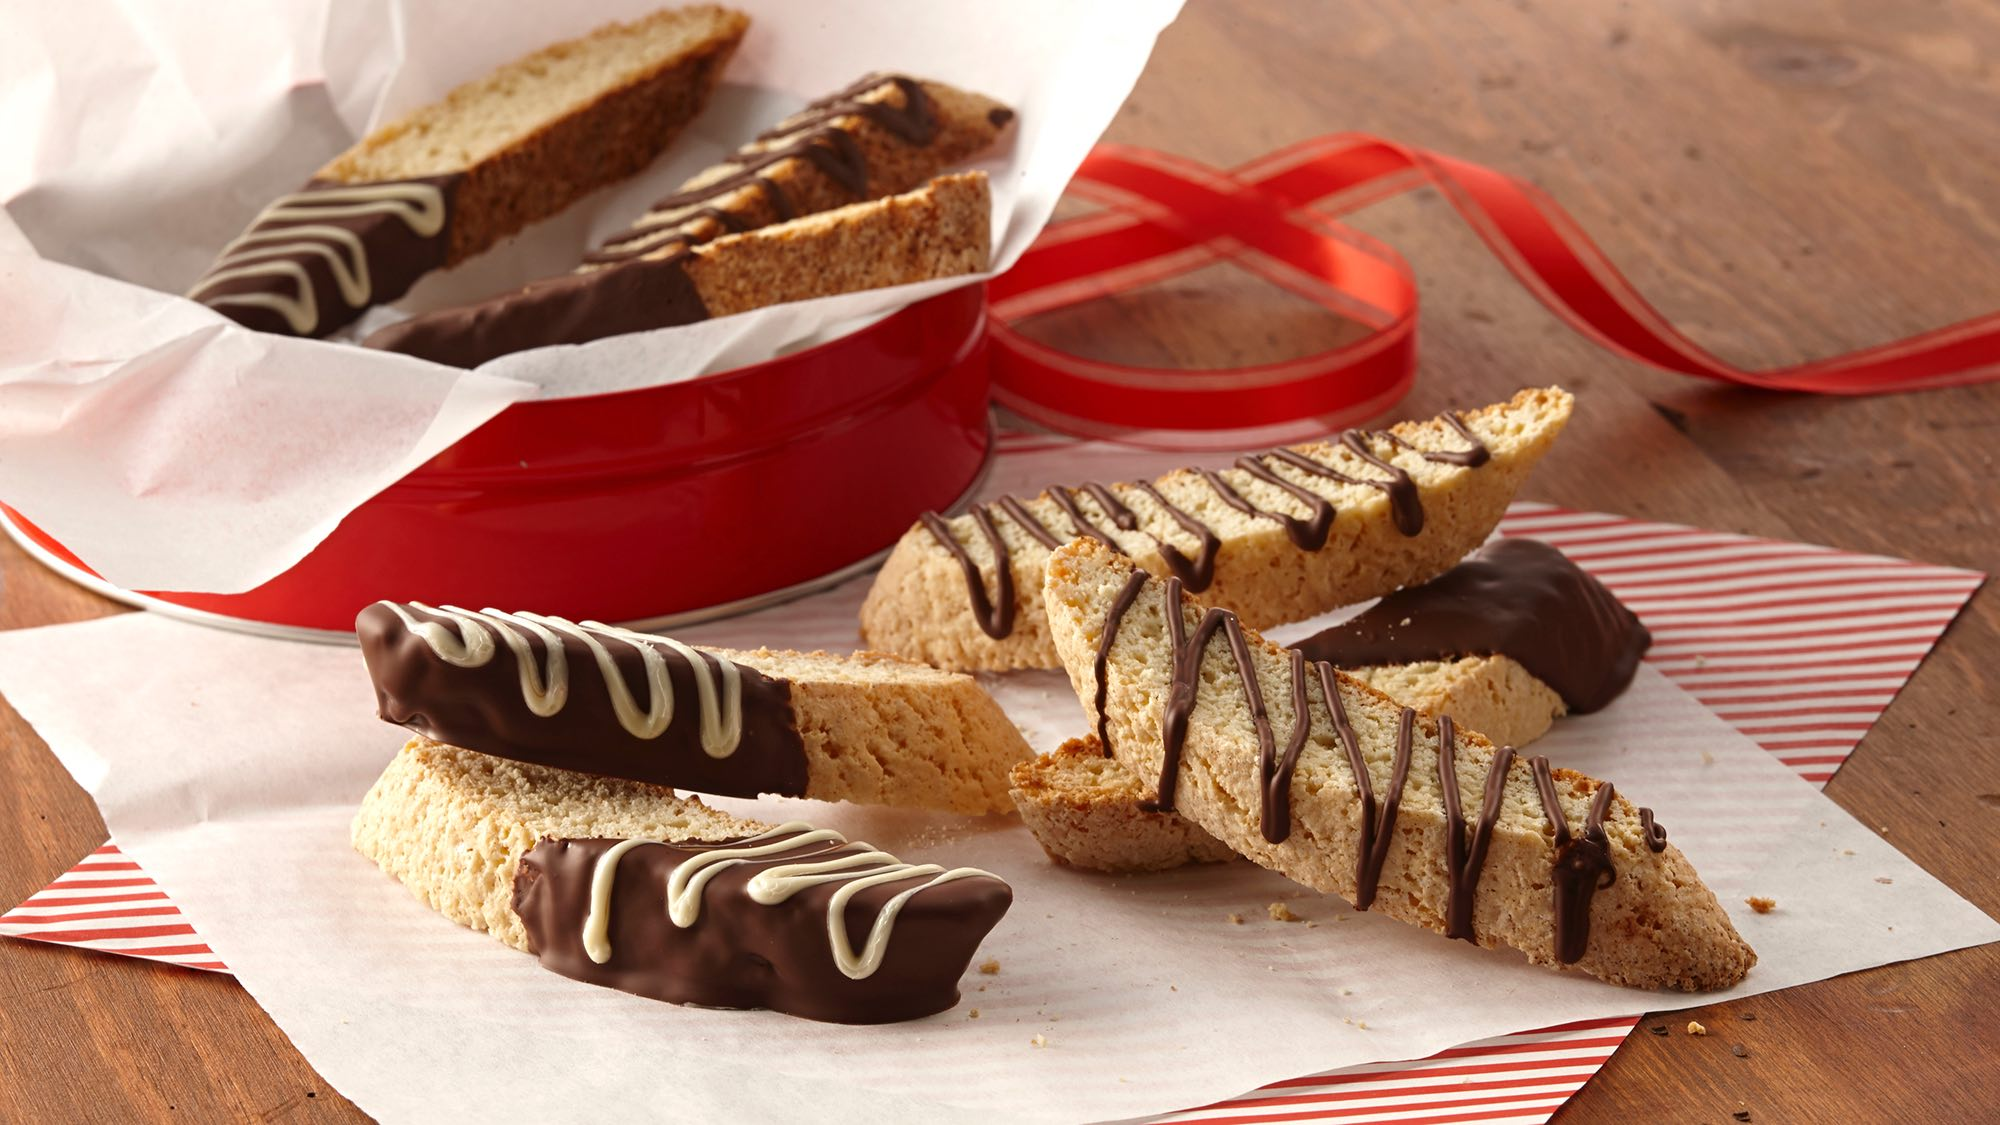 McCormick Chocolate Dipped Anise Biscotti